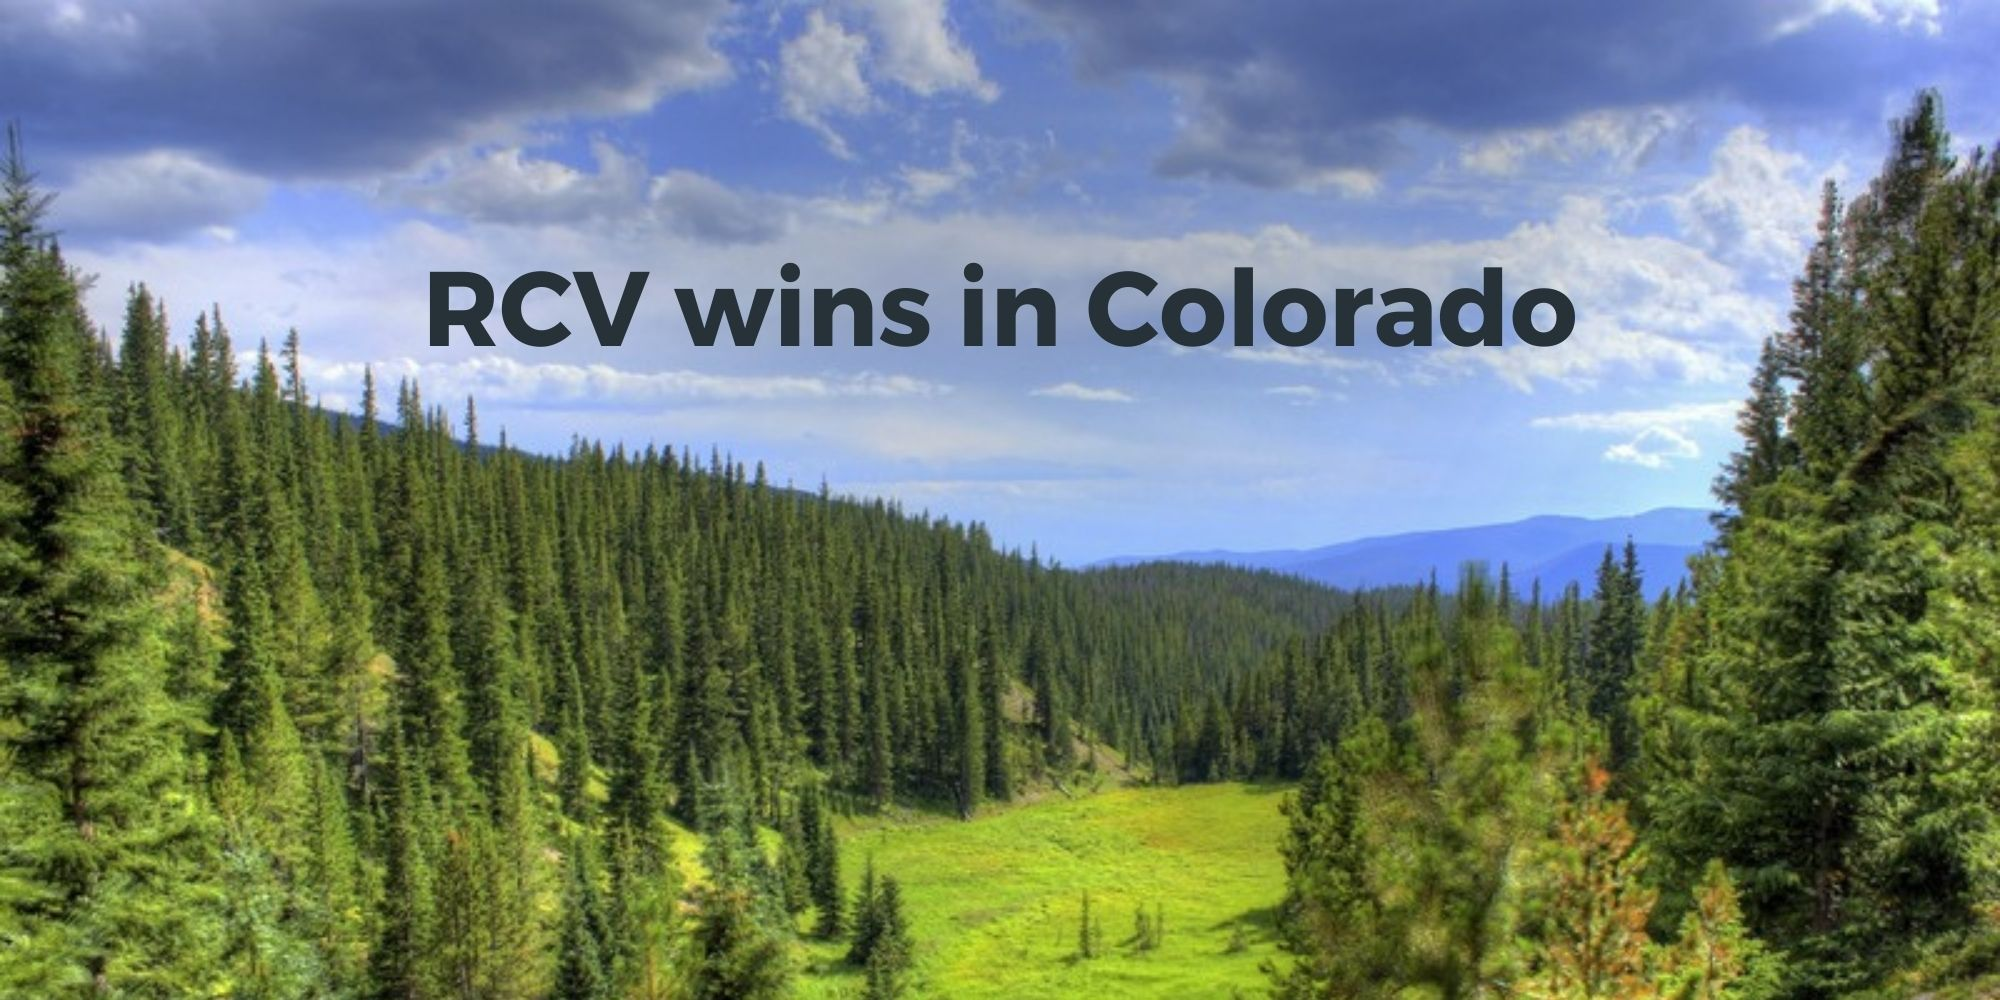 Major win for ranked choice voting in Colorado